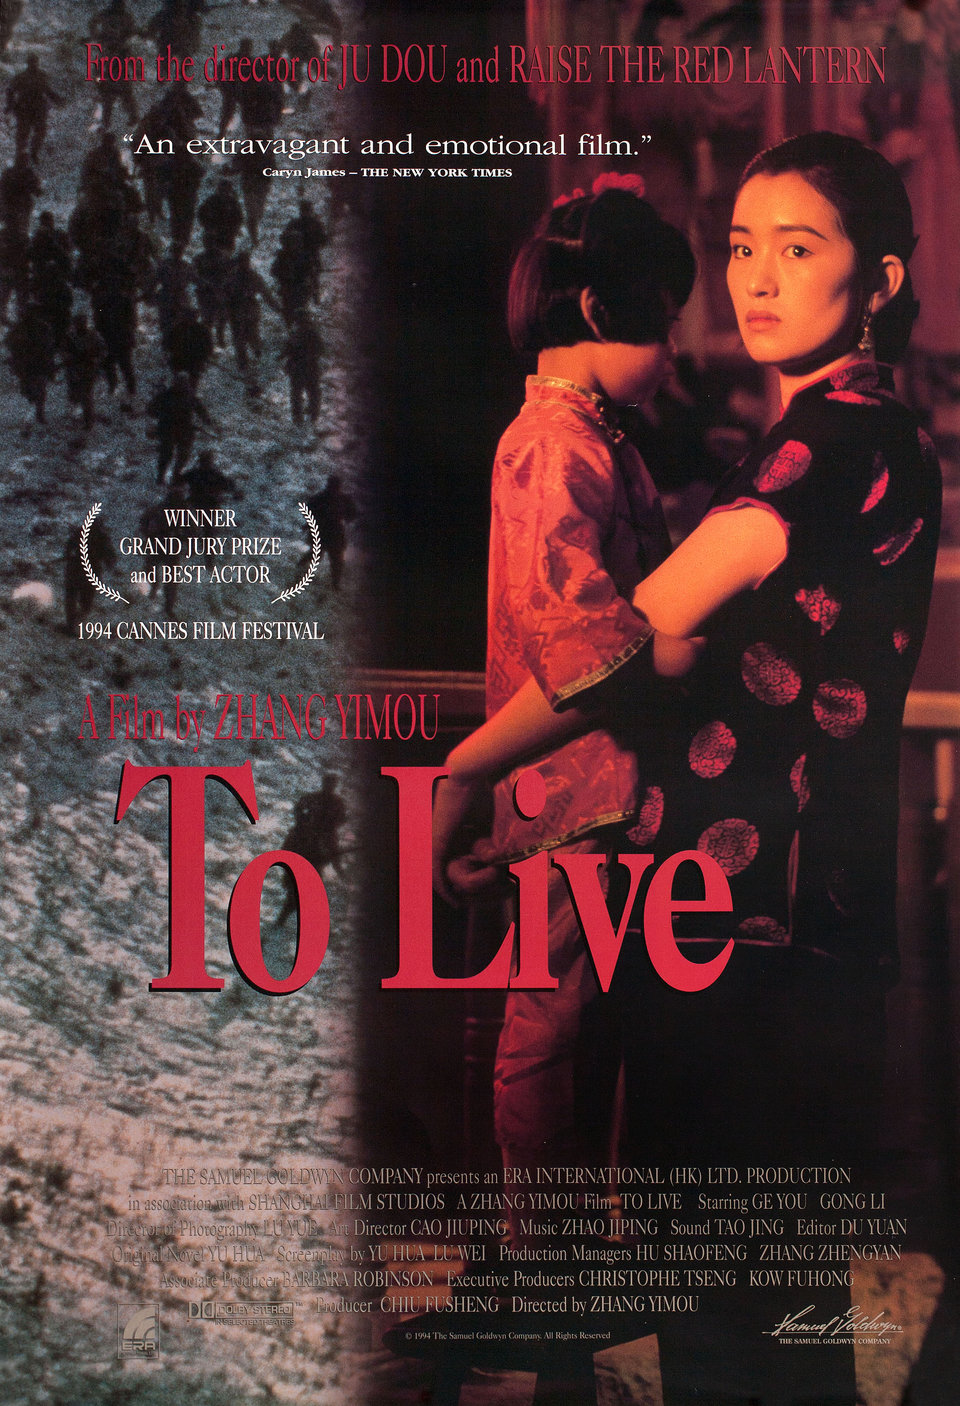 To Live 1994 U.S. One Sheet Poster